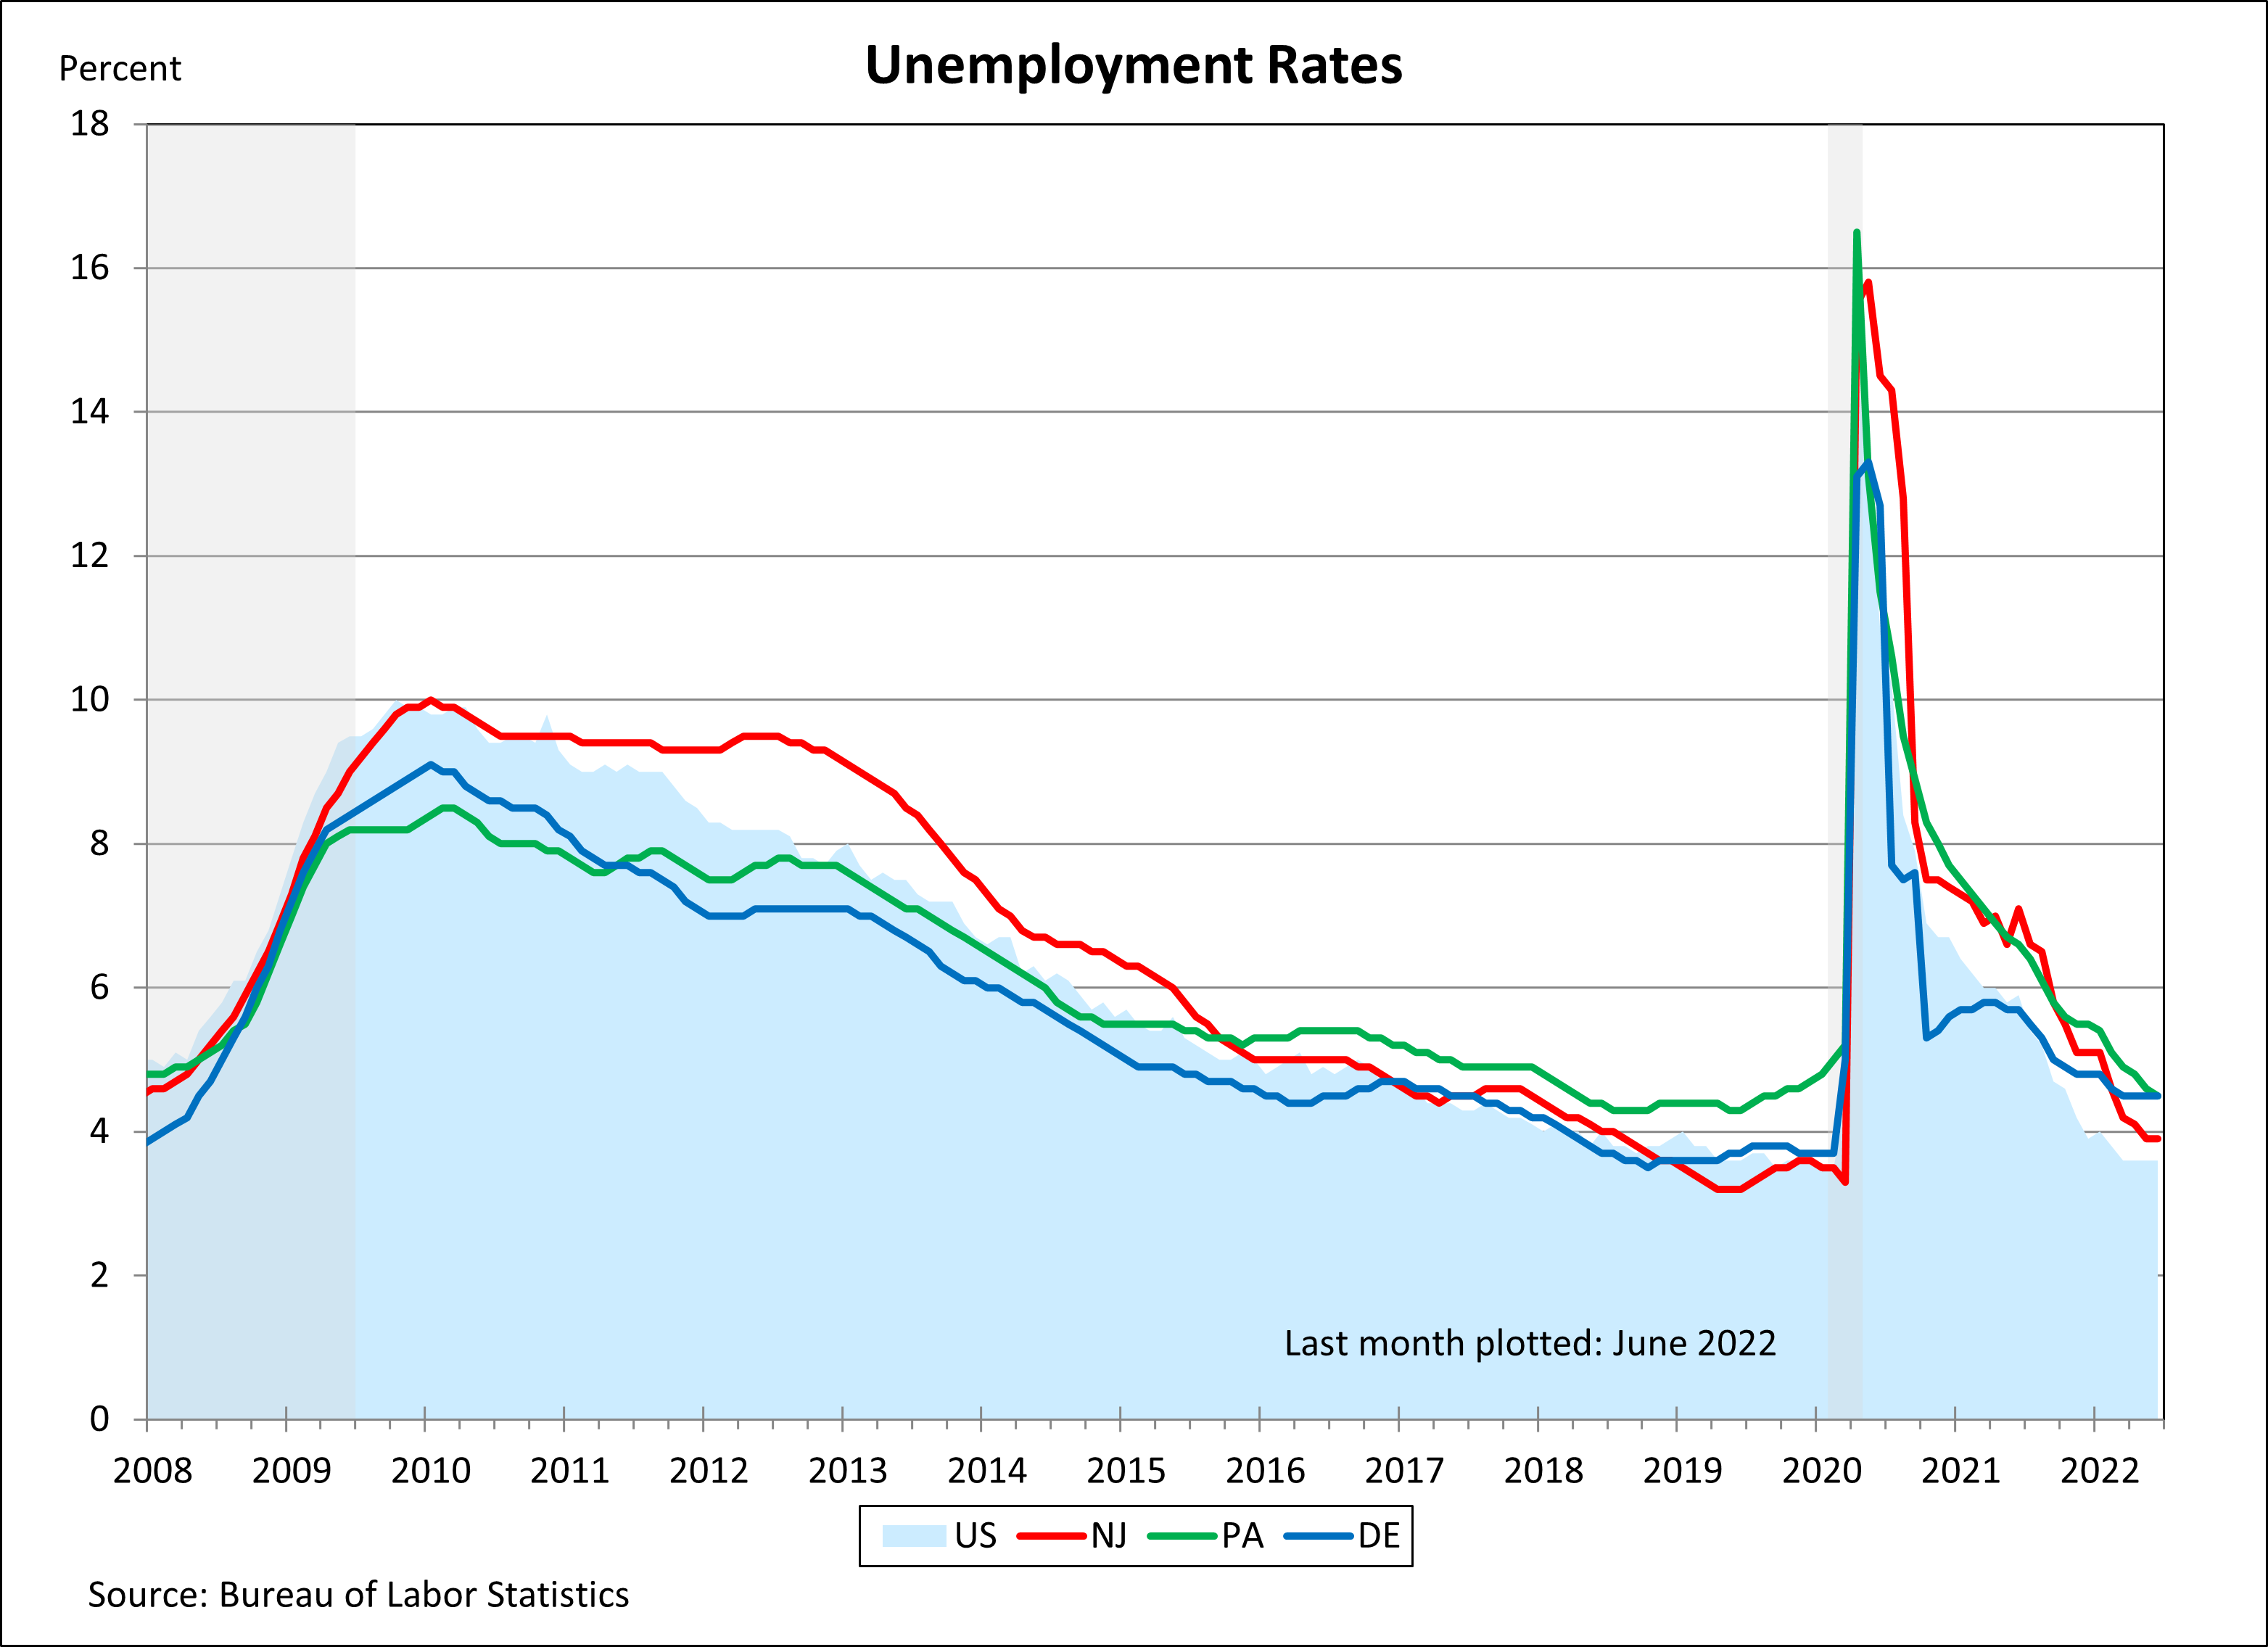 Line chart showing Unemployment Rates